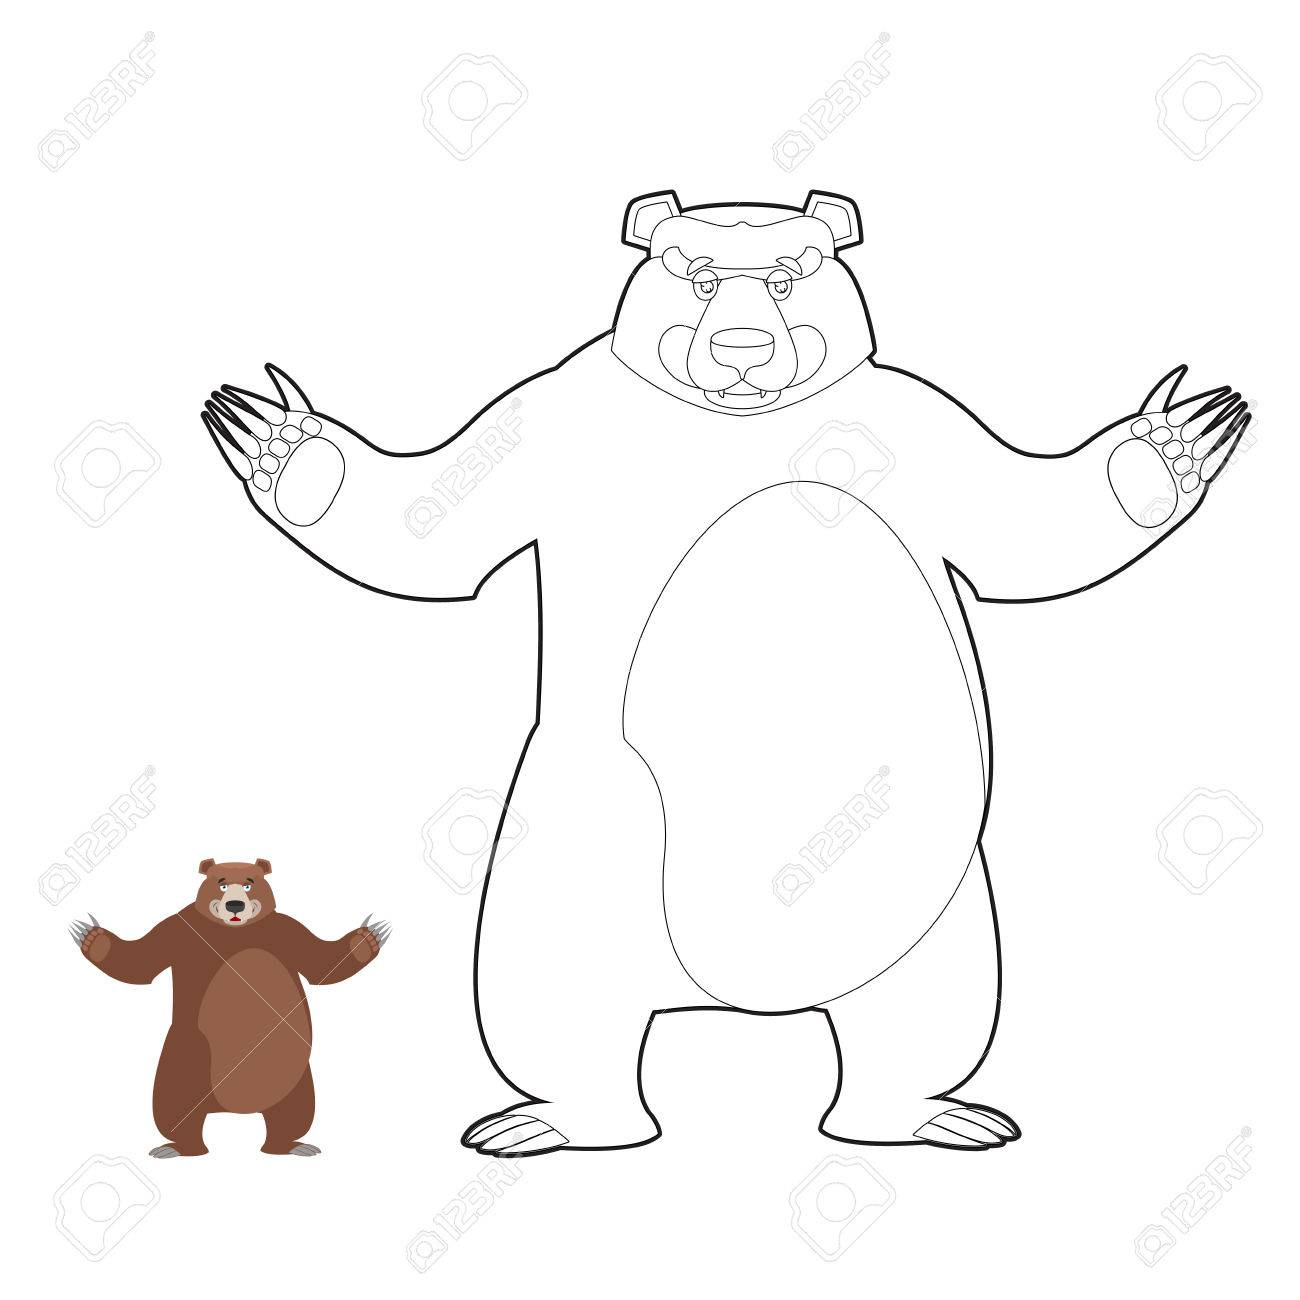 Bear Coloring Book Grizzlies In Linear Style Good Happy Wild Royalty Free Cliparts Vectors And Stock Illustration Image 60110315